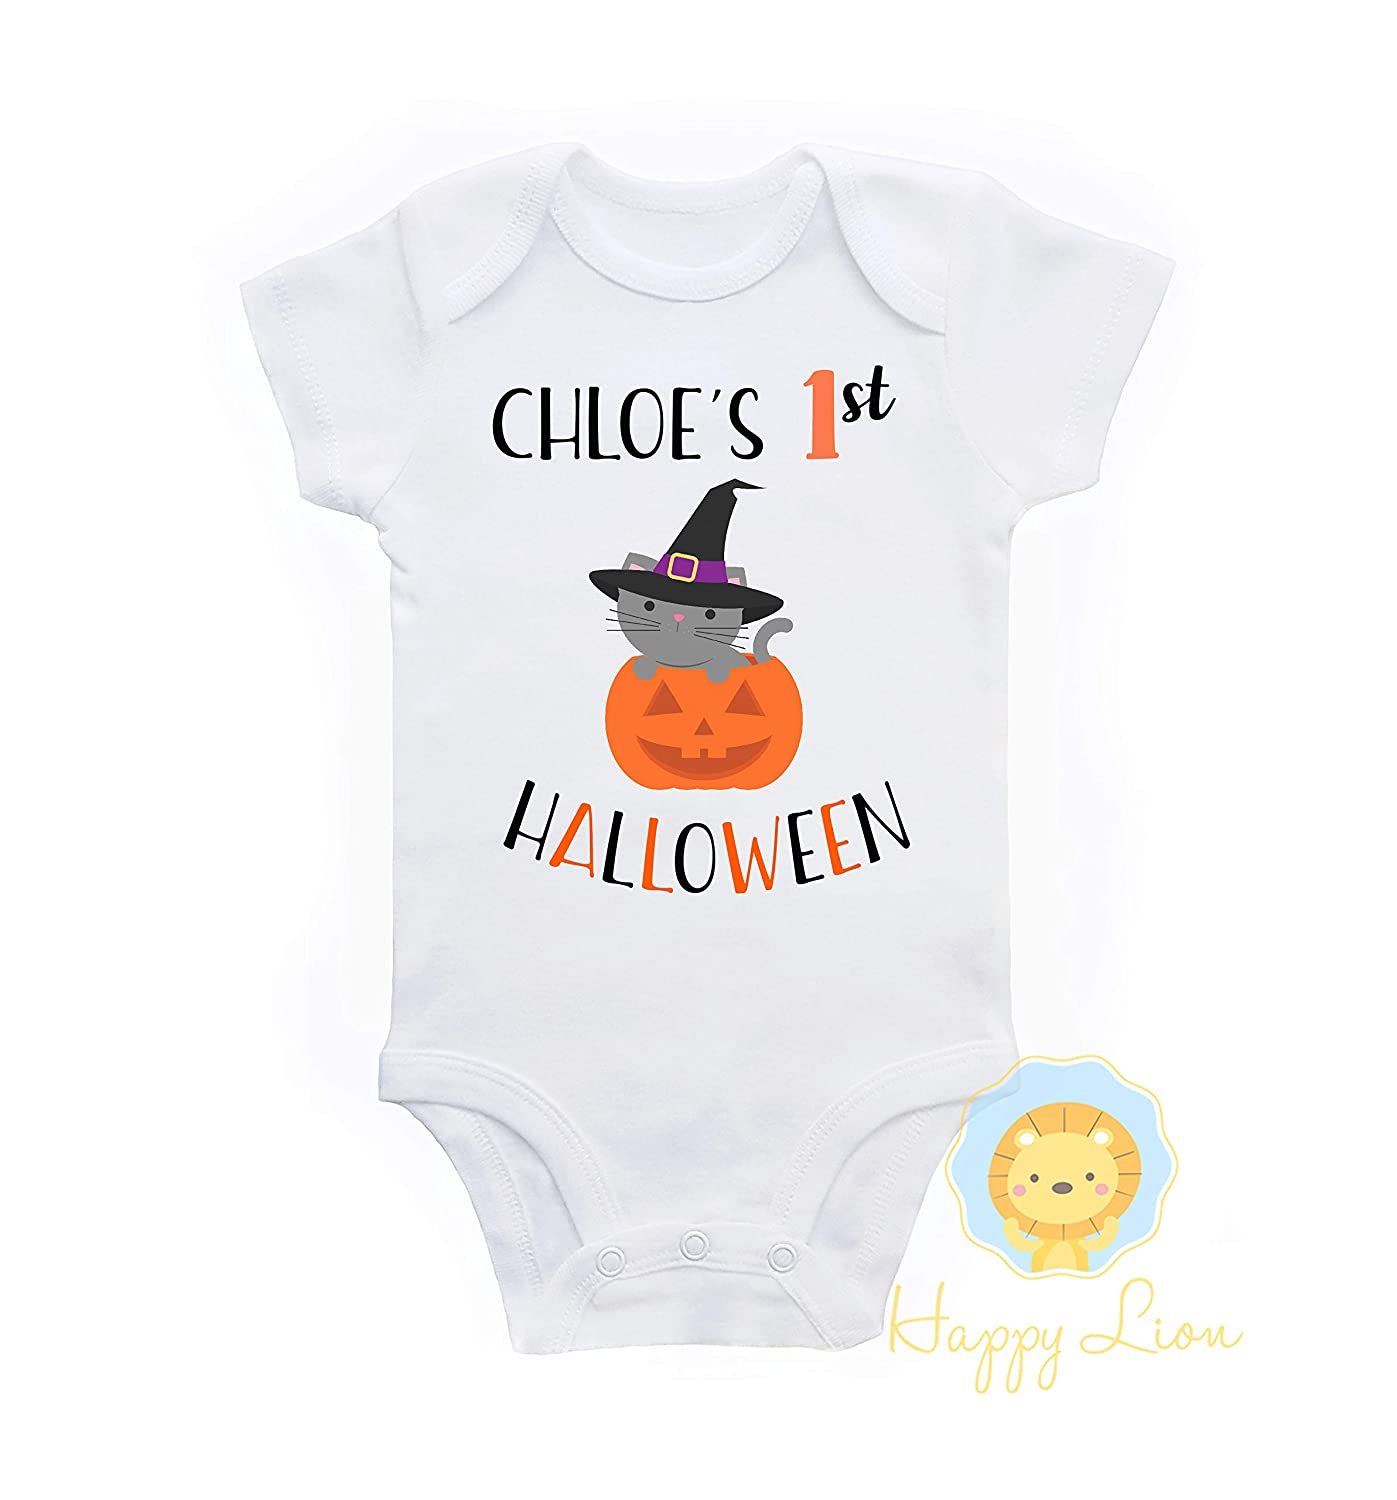 Happy Lion Clothing - 1st Halloween baby girl personalized onesie outfit